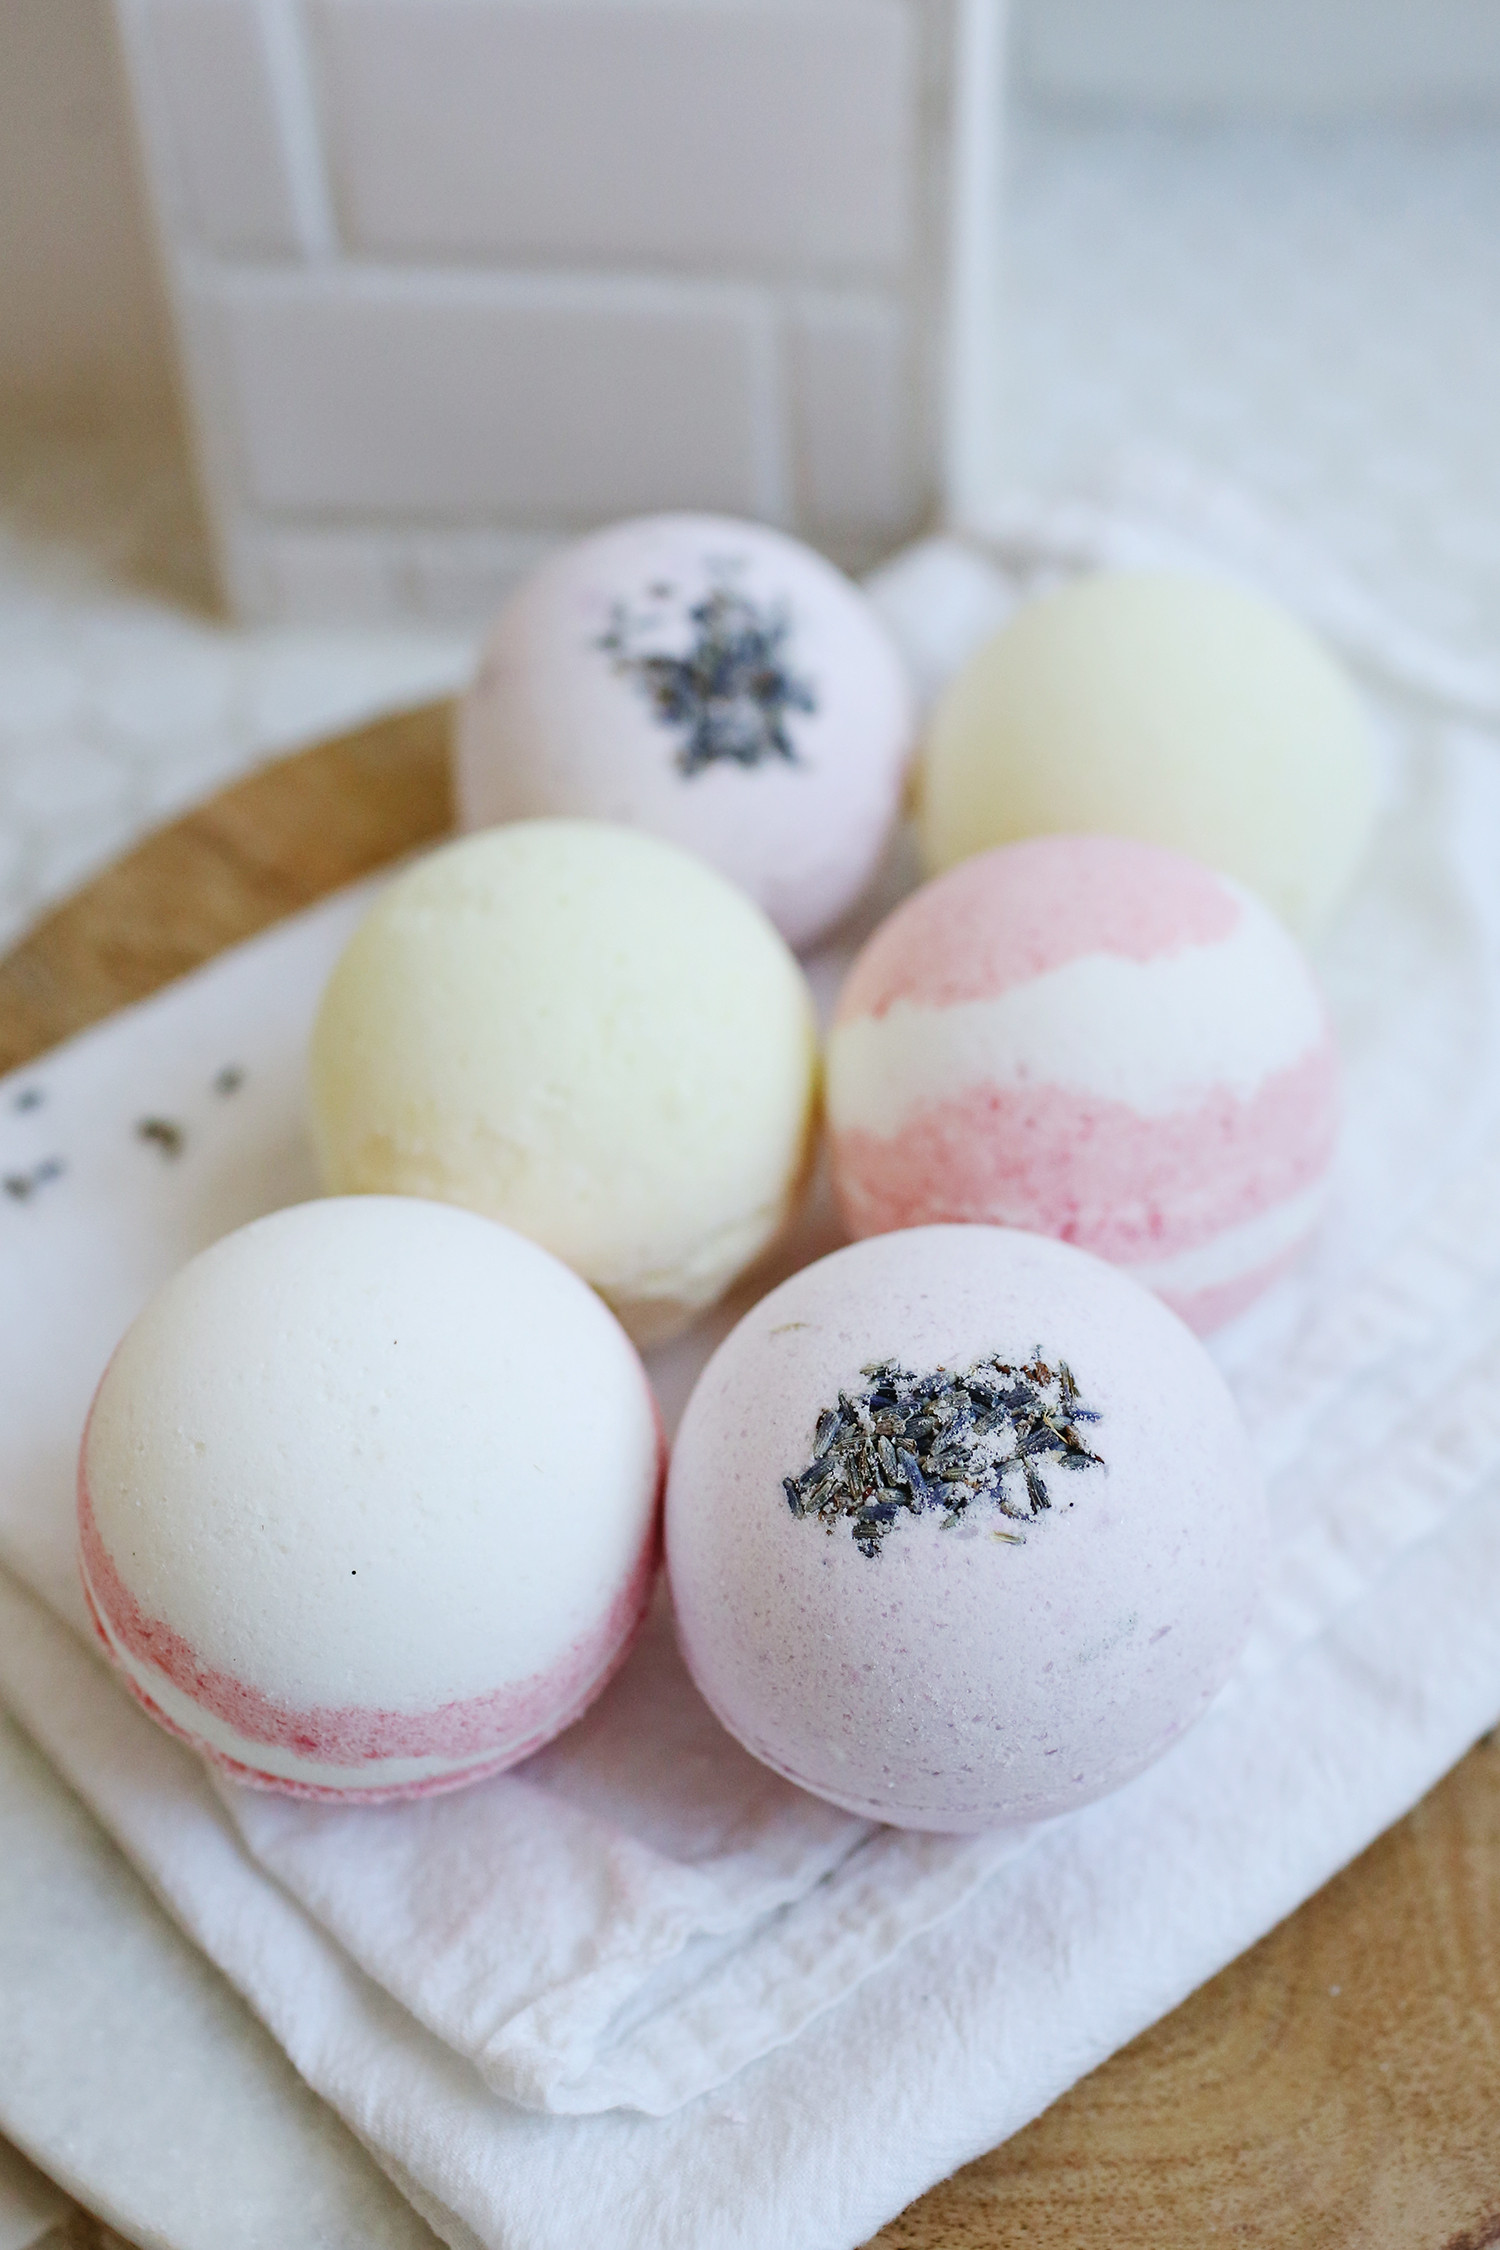 Best ideas about Bath Bombs DIY . Save or Pin Homemade Bath Bombs A Beautiful Mess Now.